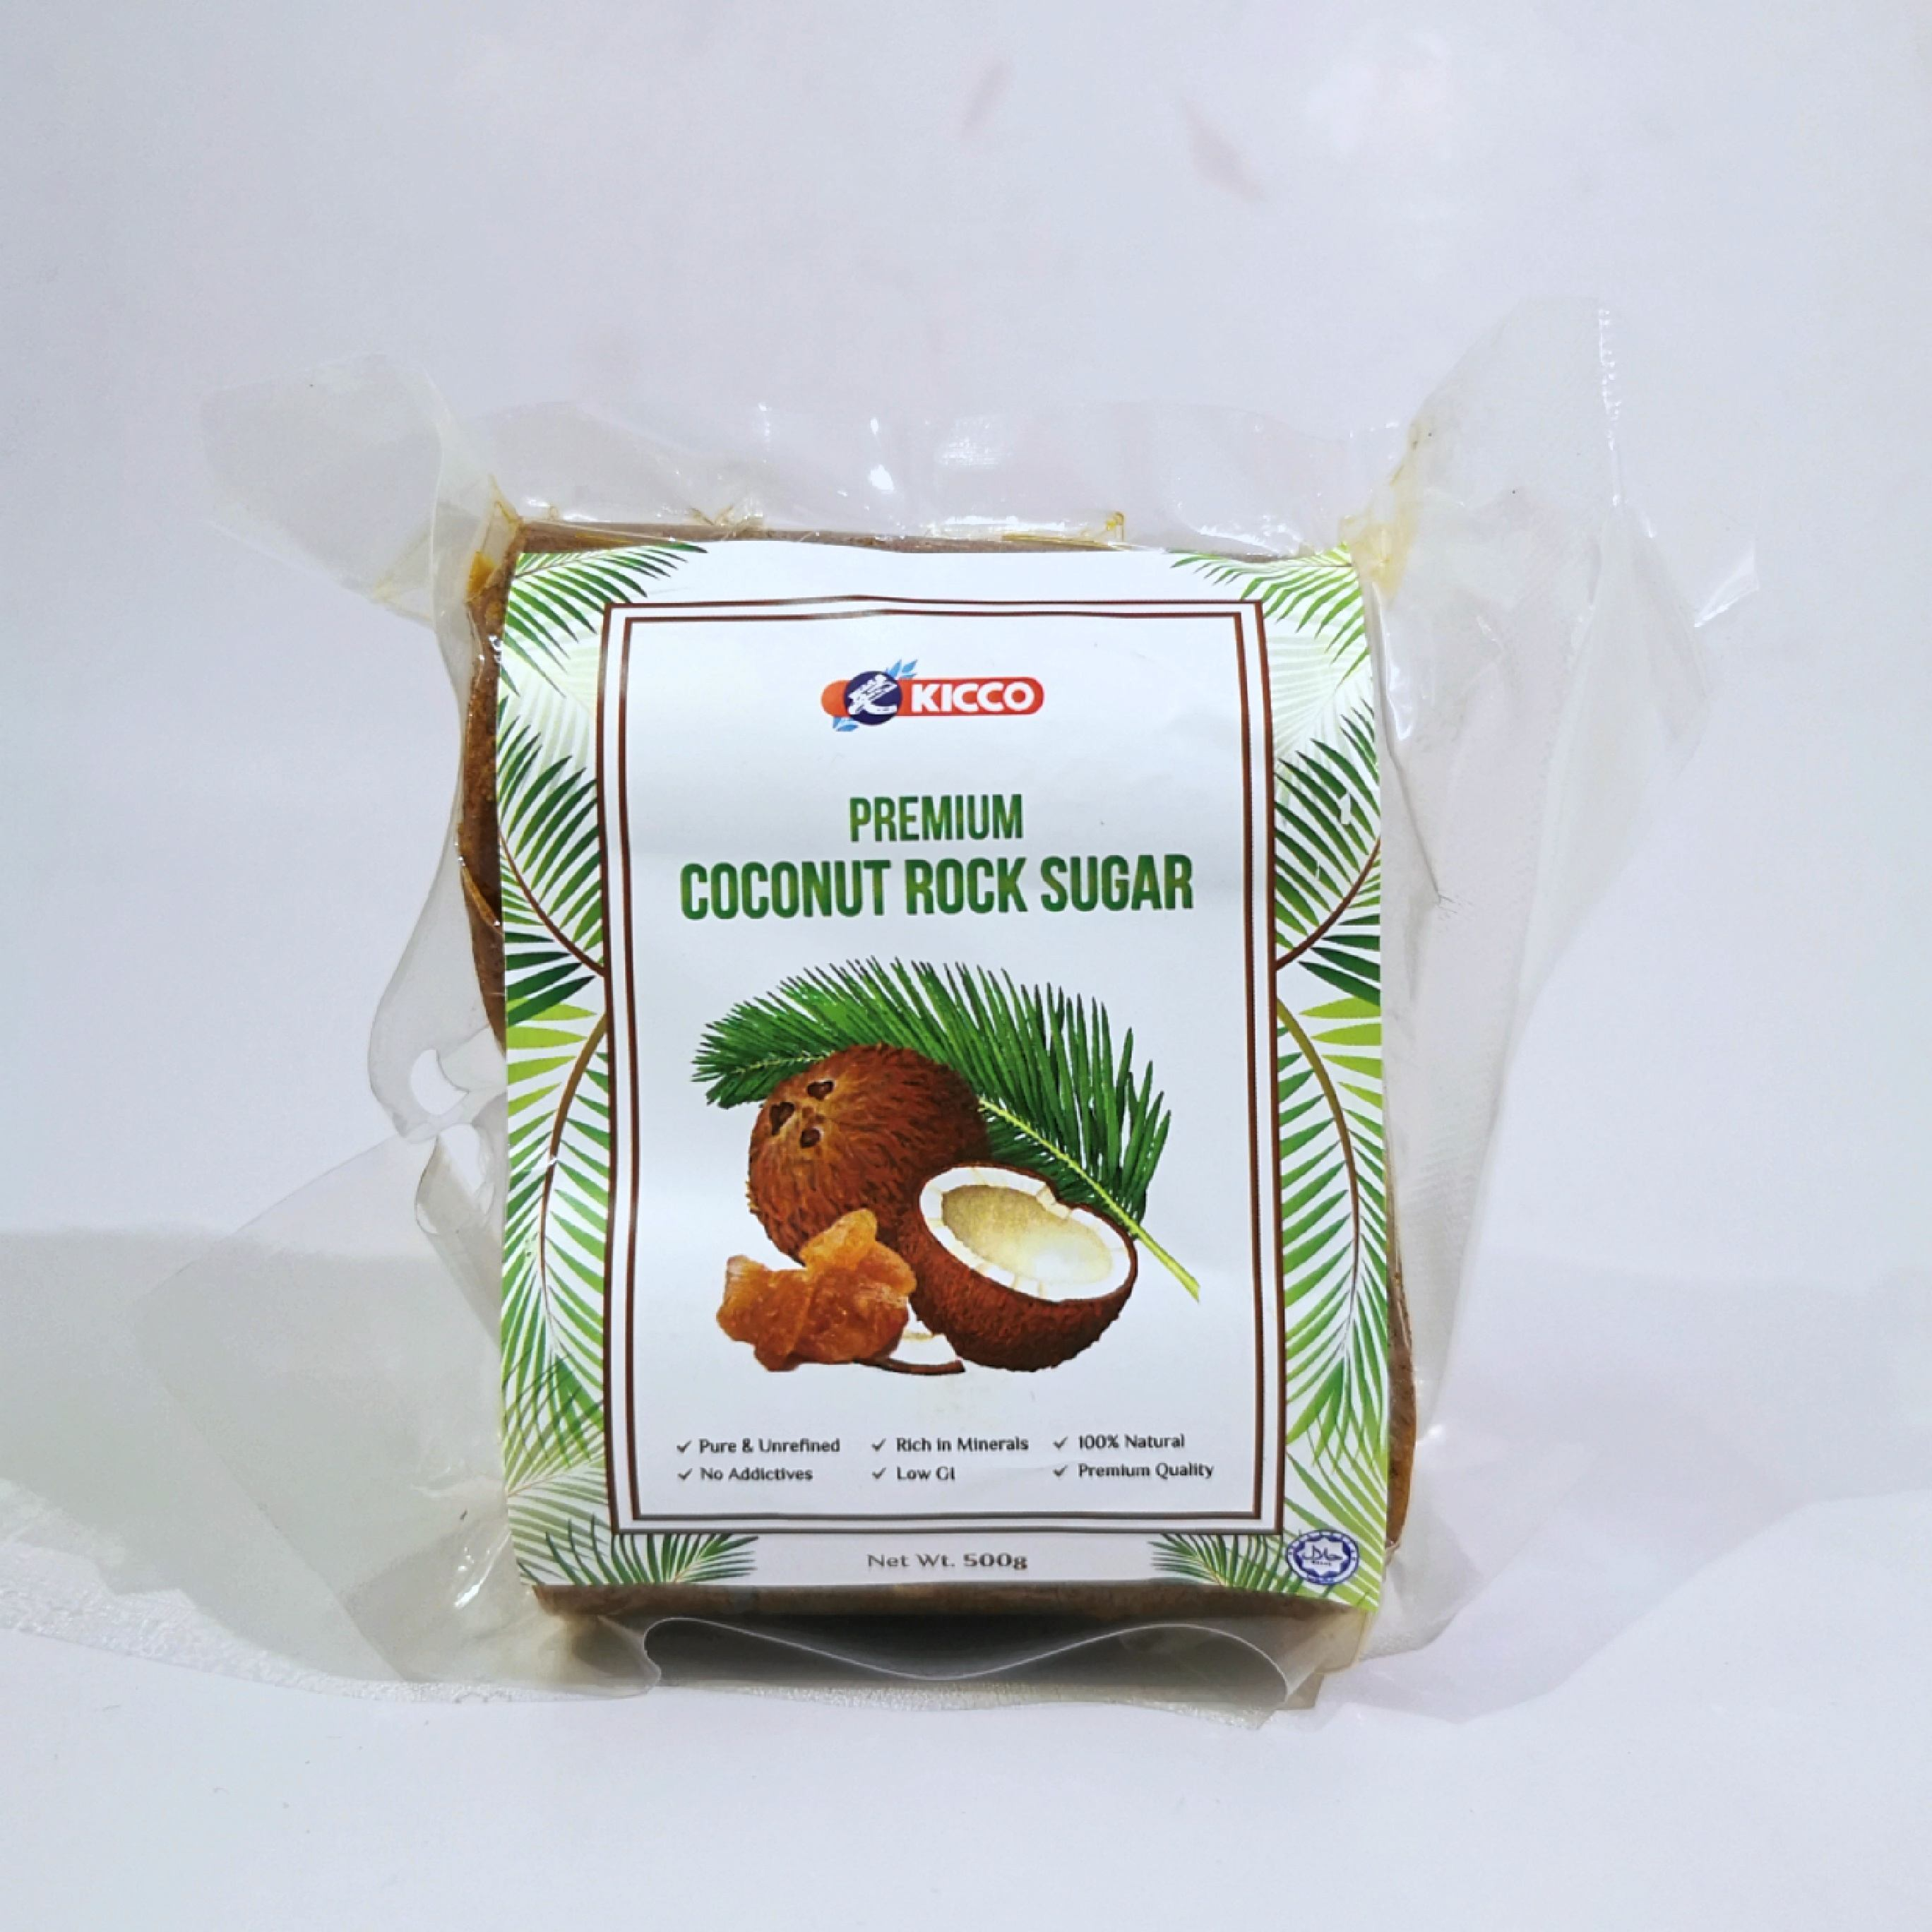 Kicco Coconut Rock Sugar / Premium quality 100% natural aromatic pure & unrefined Malaysian Coconut Sap/Nectar Sweet Taste